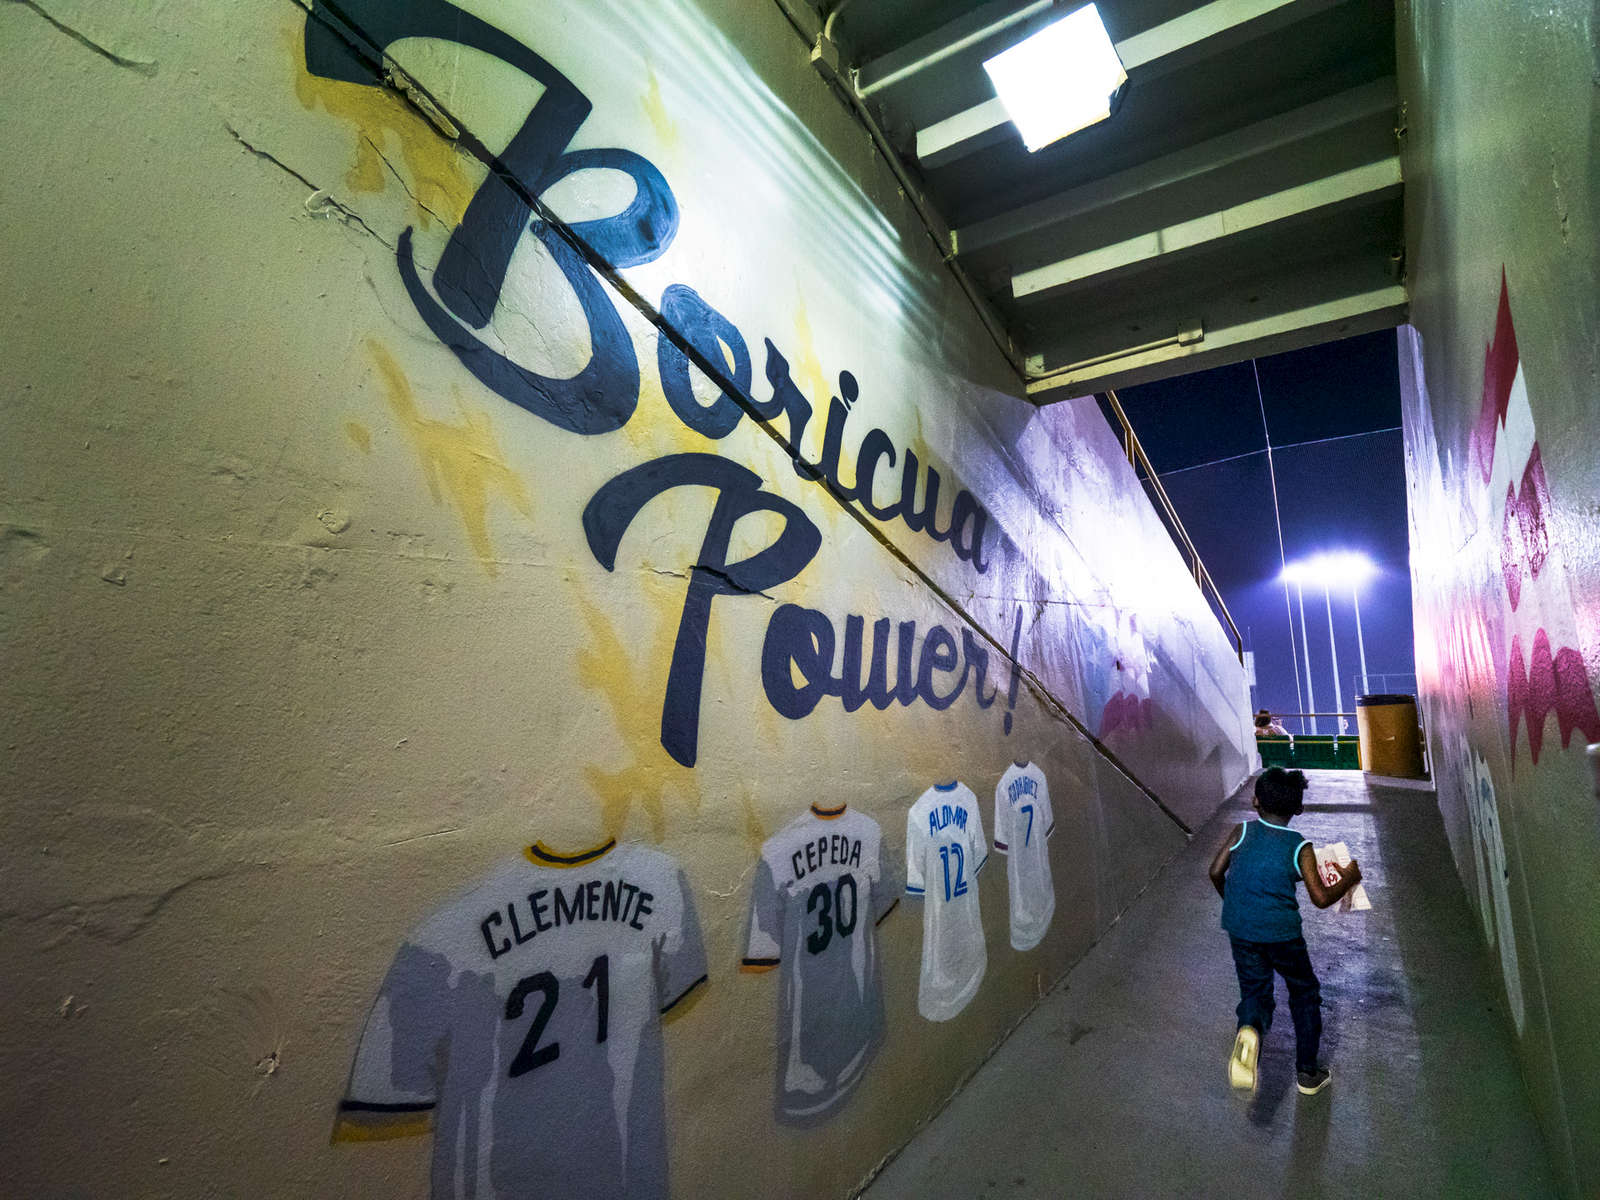 SAN JUAN, PUERTO RICO - NOVEMBER 15:  A young fan runs with a bag of popcorn into the stadium next to a hallway leading to the field with a mural on the wall with the words Boricua Power and the Jerseys of famous MLB Puerto Rican baseball players Roberto Clemente and Orlando Cepeda  during the game between the Gigantes De Carolina  against the Indios De Mayaguez during opening day of the Professional Baseball League of Puerto Rico at Hiram Bithorn Stadium on November 15, 2018 in San Juan, Puerto Rico. The effort continues in Puerto Rico to remain and rebuild more than one year after the Hurricane Maria hit and devastated the island on September 20, 2017. The official number of deaths from the disaster is 2,975.